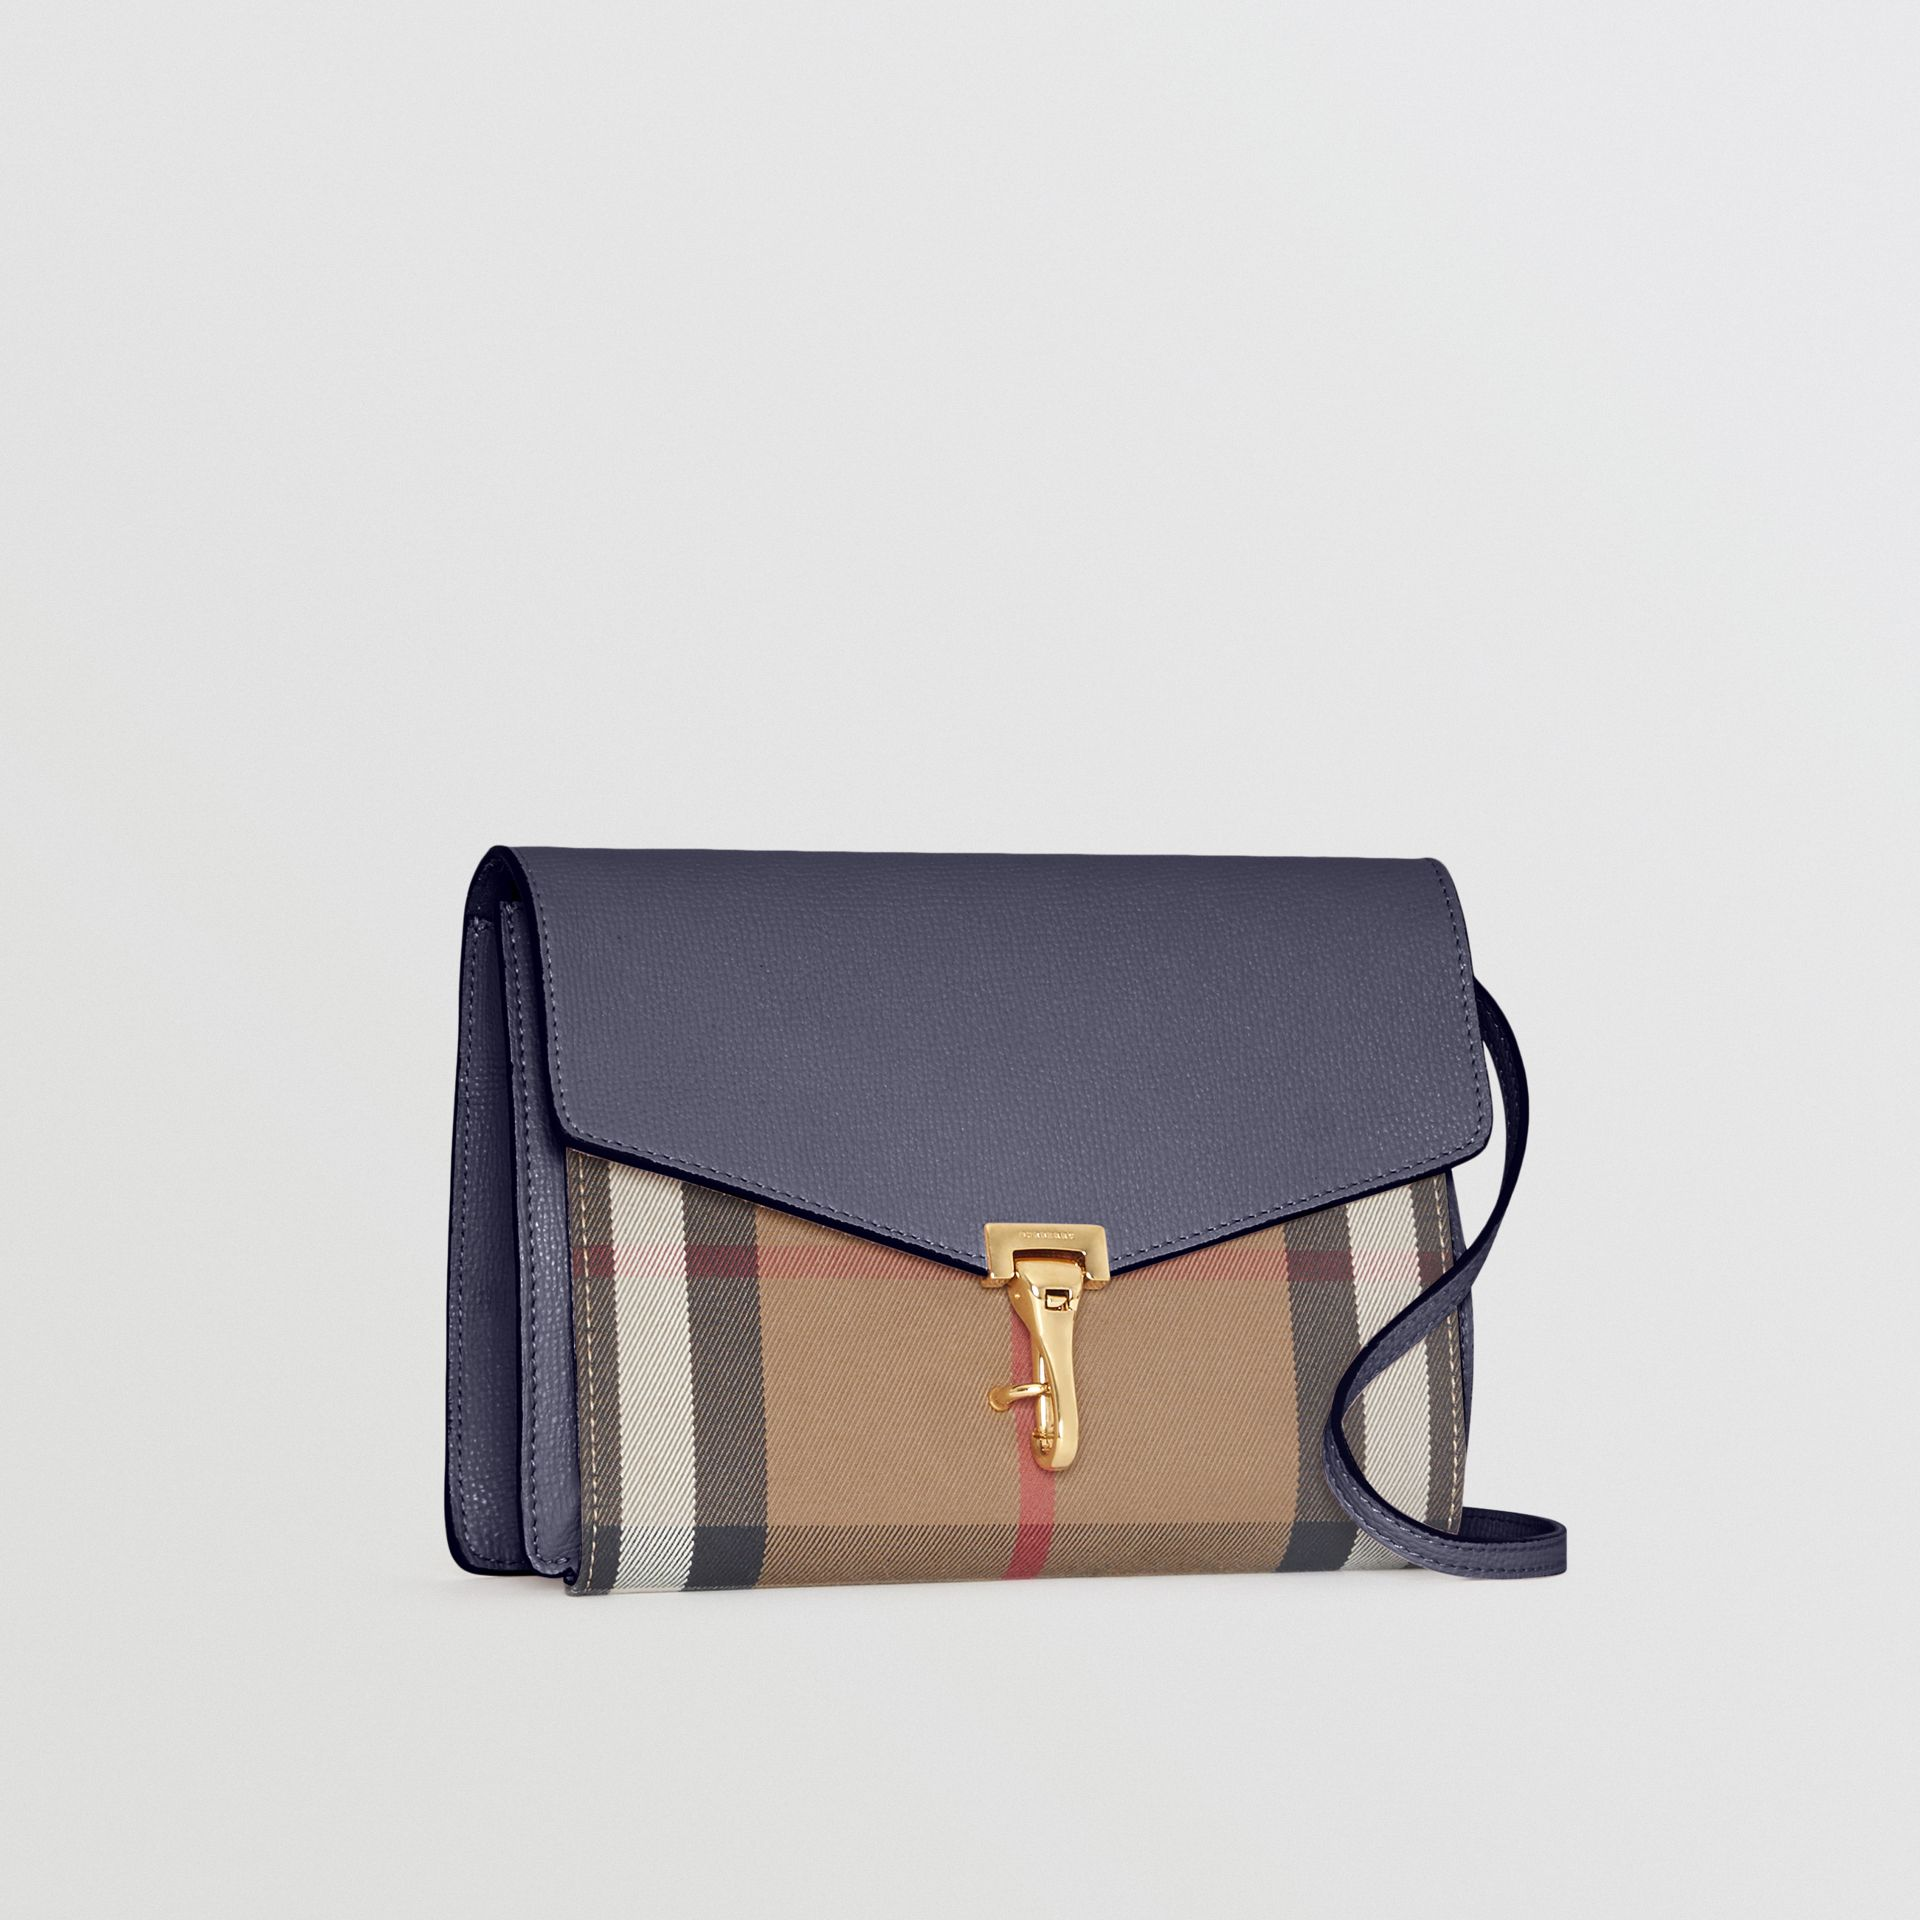 Small Leather and House Check Crossbody Bag in Ink Blue - Women | Burberry Hong Kong - gallery image 6